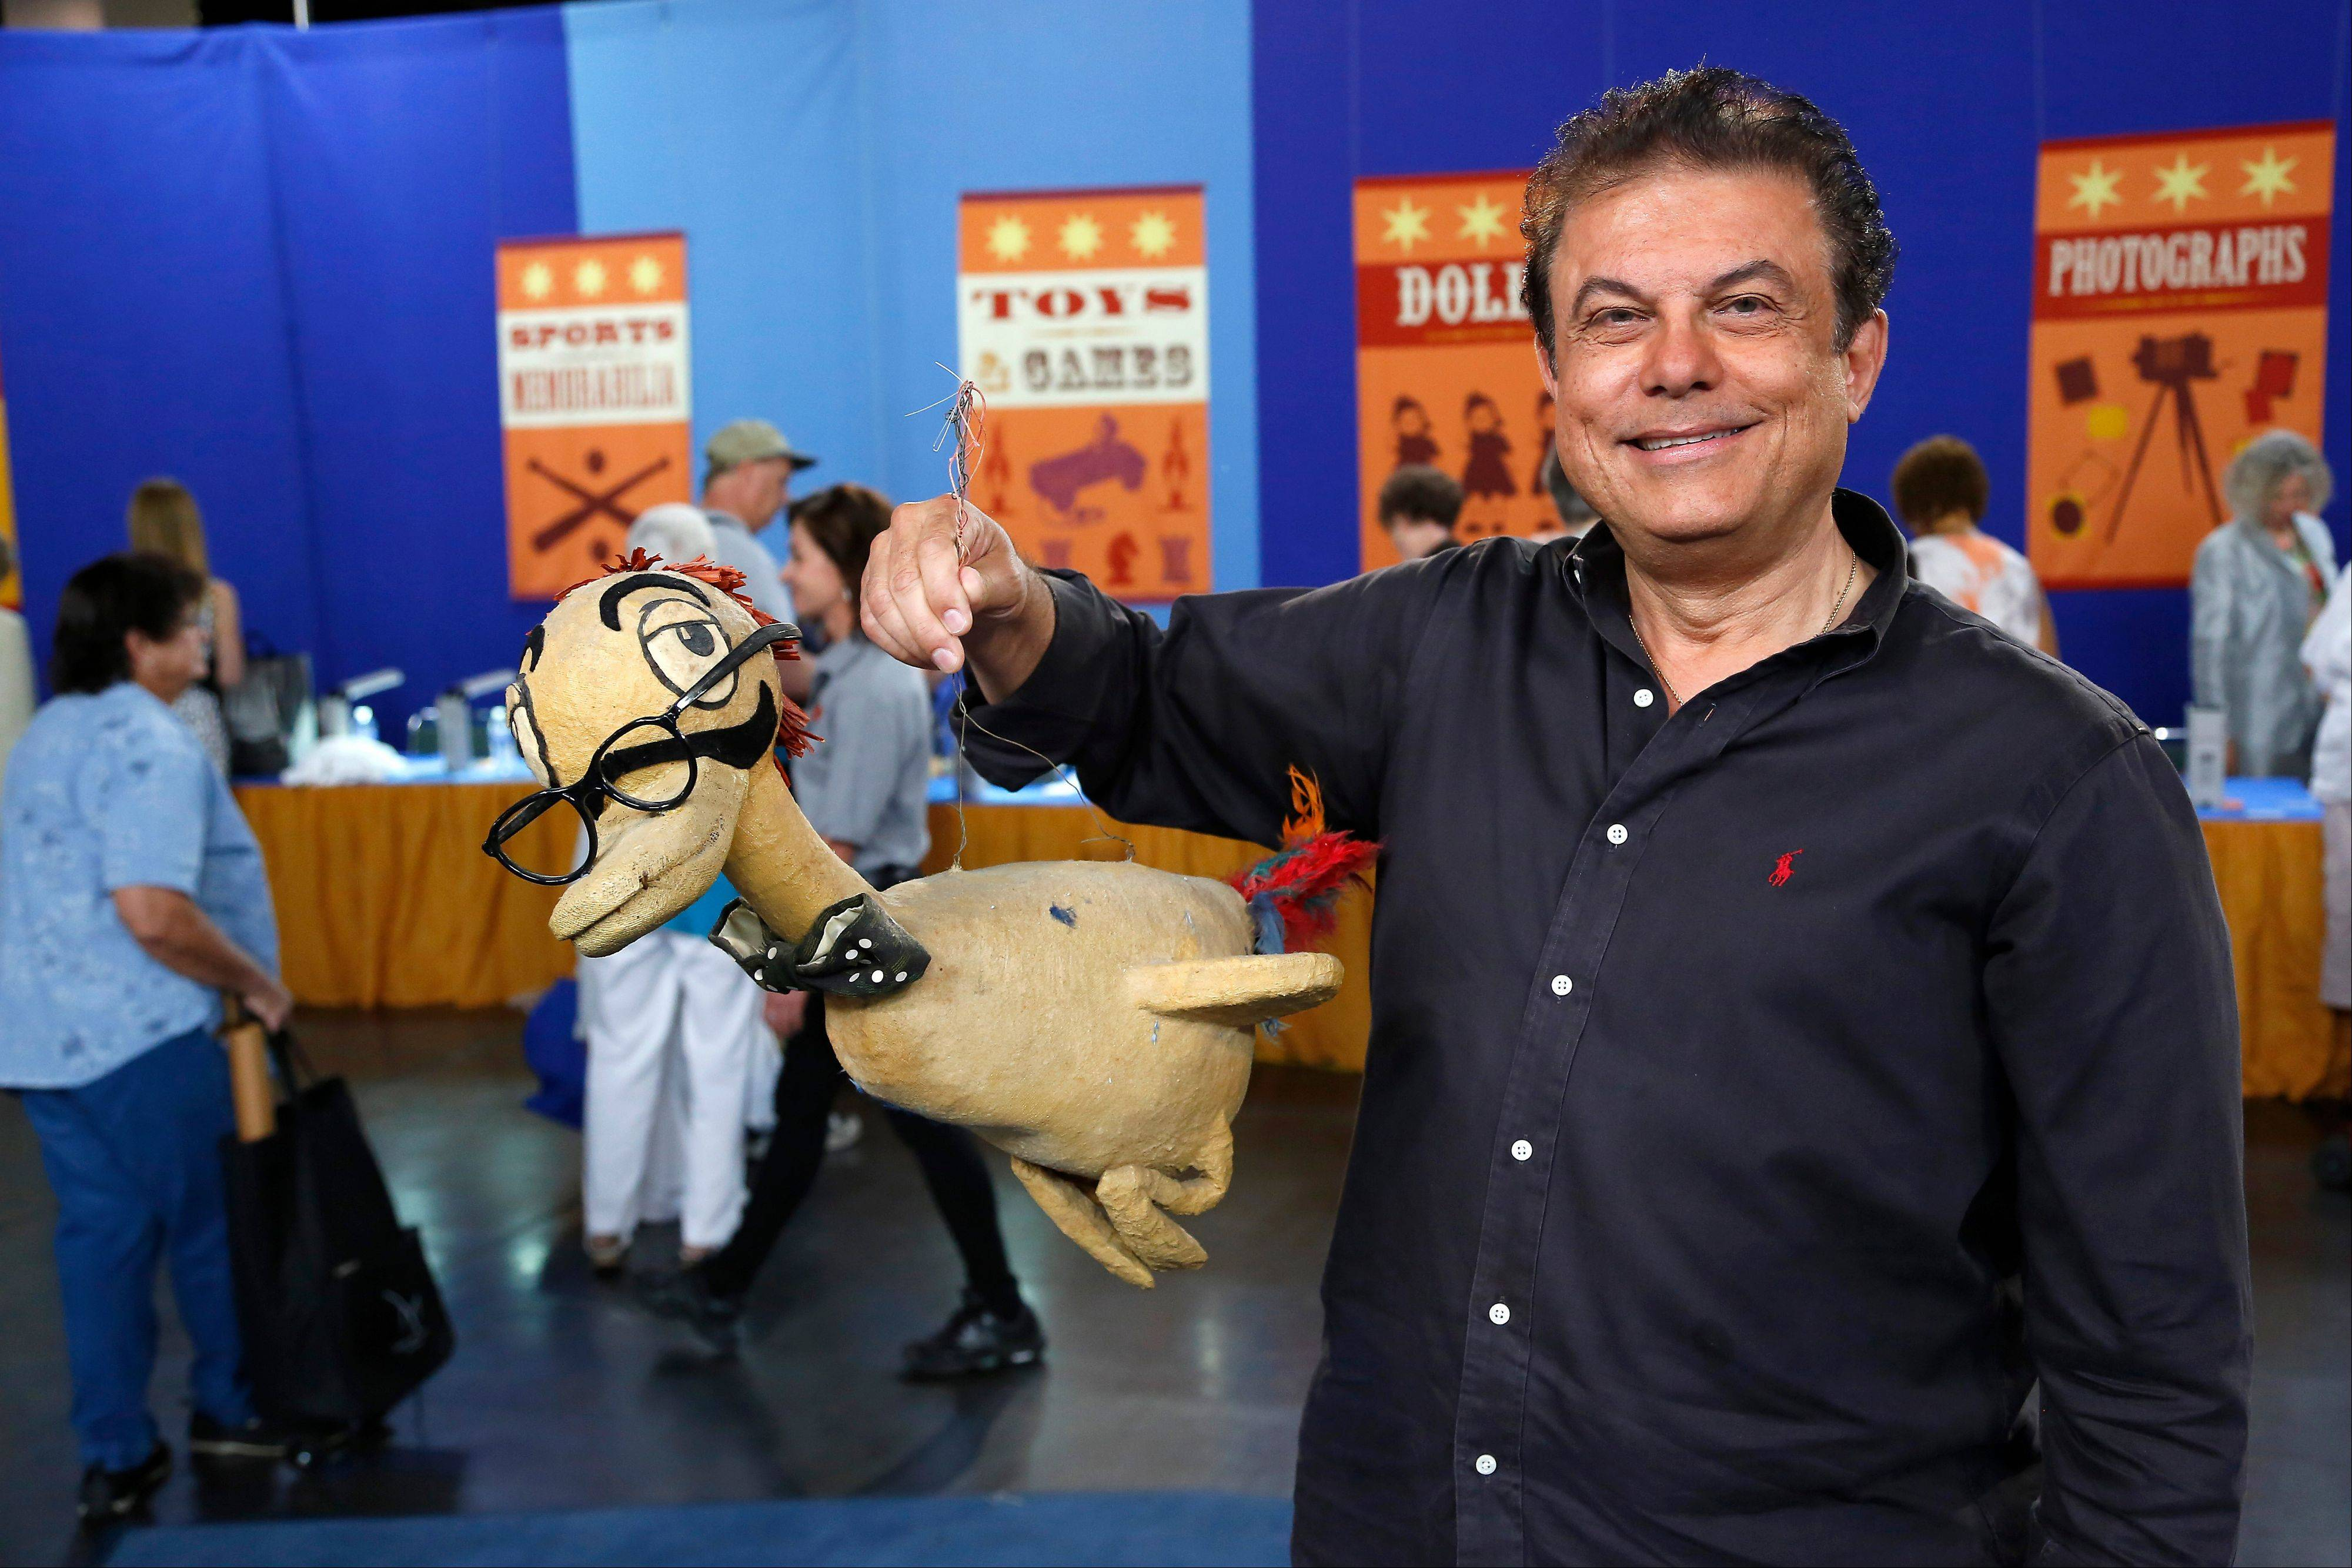 Joe holds a Marx Brother prop duck during the taping of the popular appraisal show �Antiques Roadshow,� in Anaheim, Calif. The top-rated PBS series is on the move, taping programs in eight U.S. cities for its upcoming 18th season.